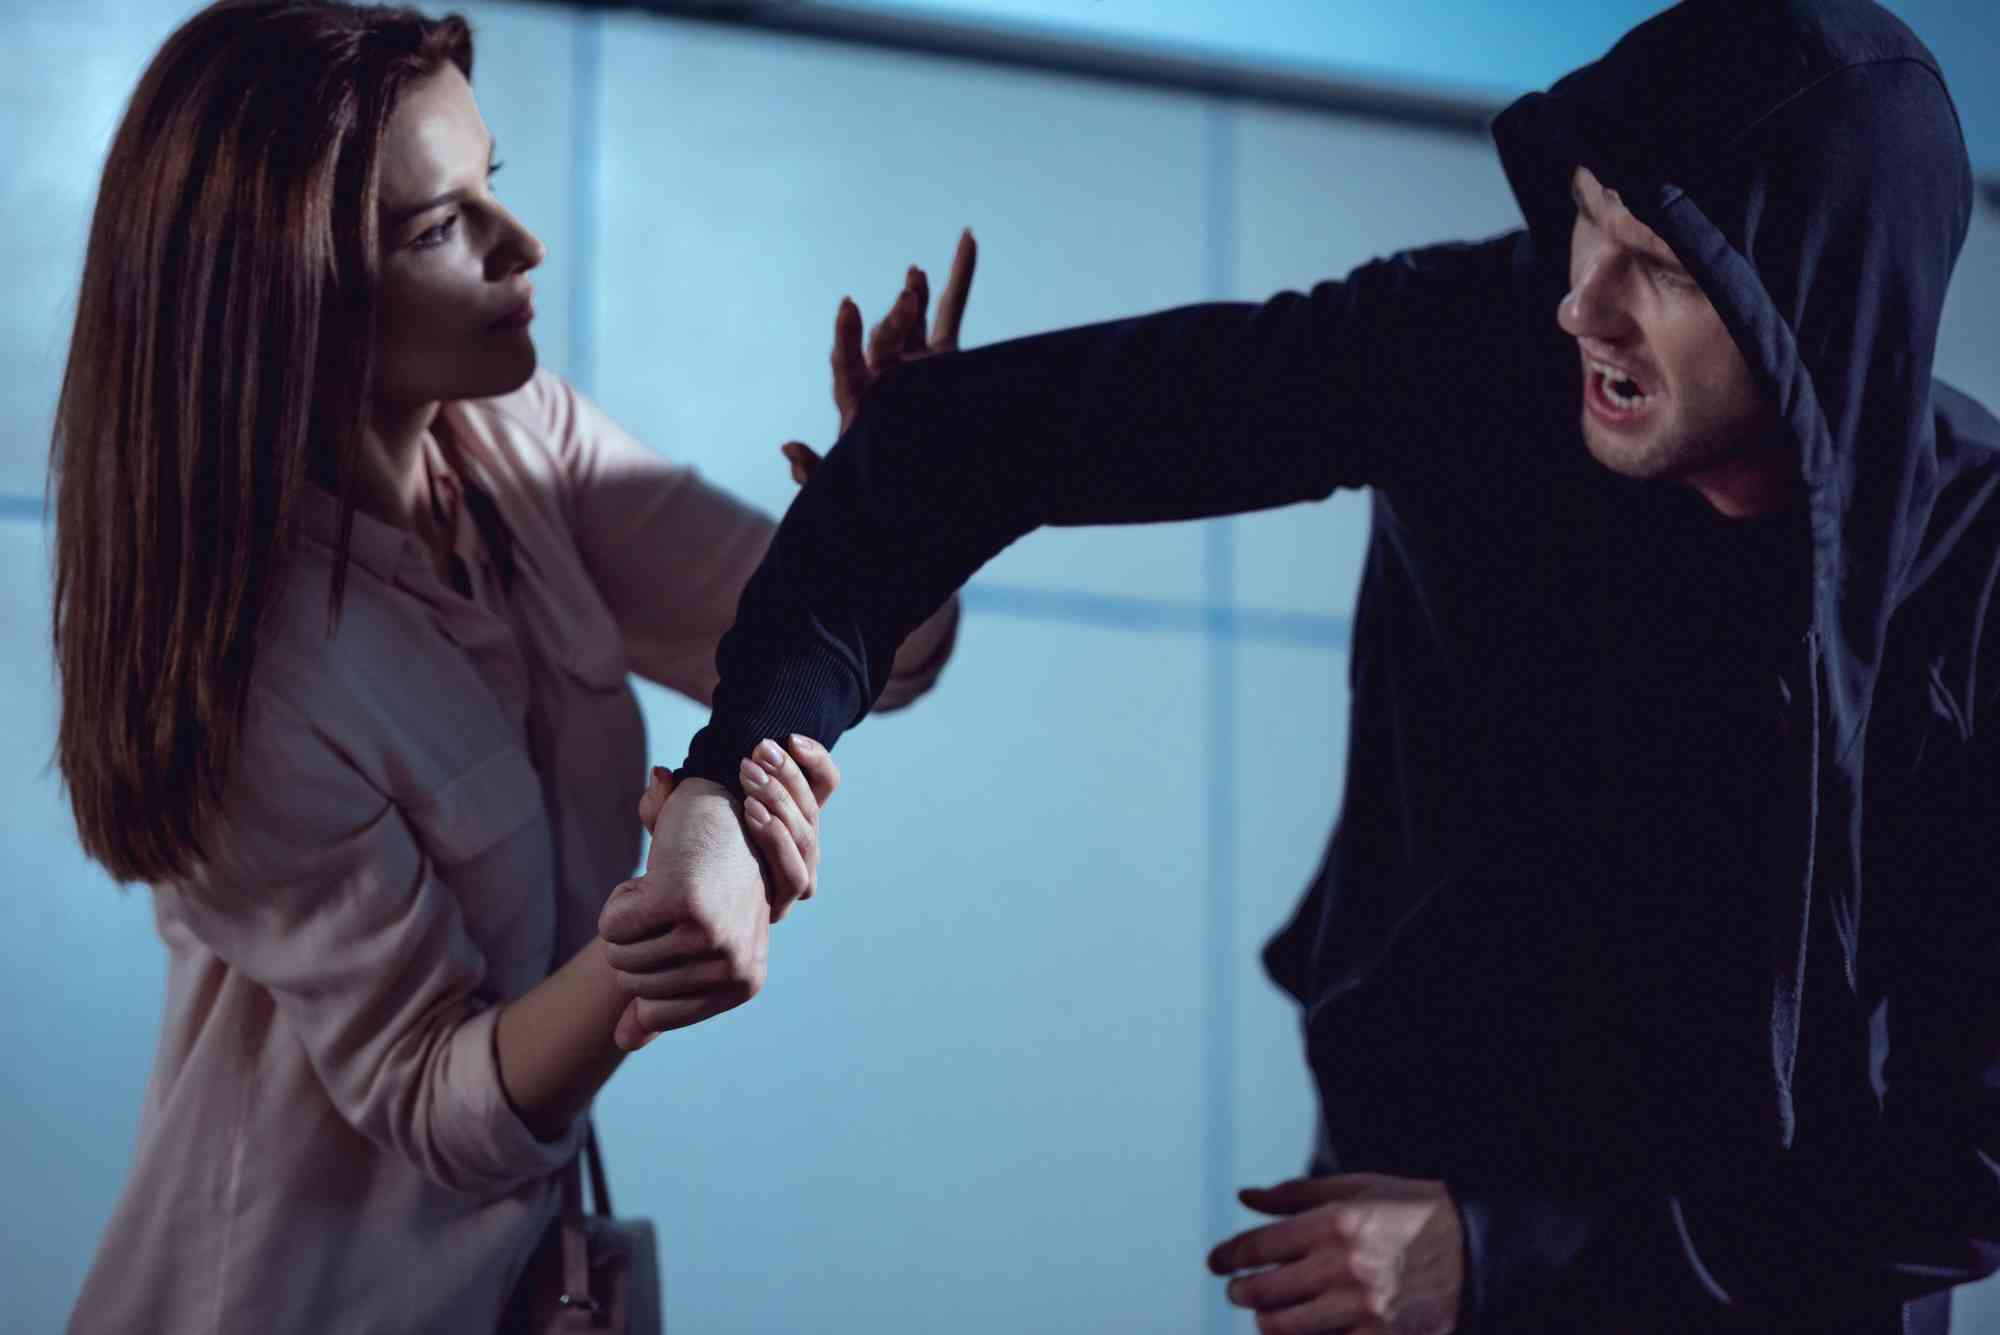 Women's Self-Defense Tips and Tactics: What to Hit Him With!